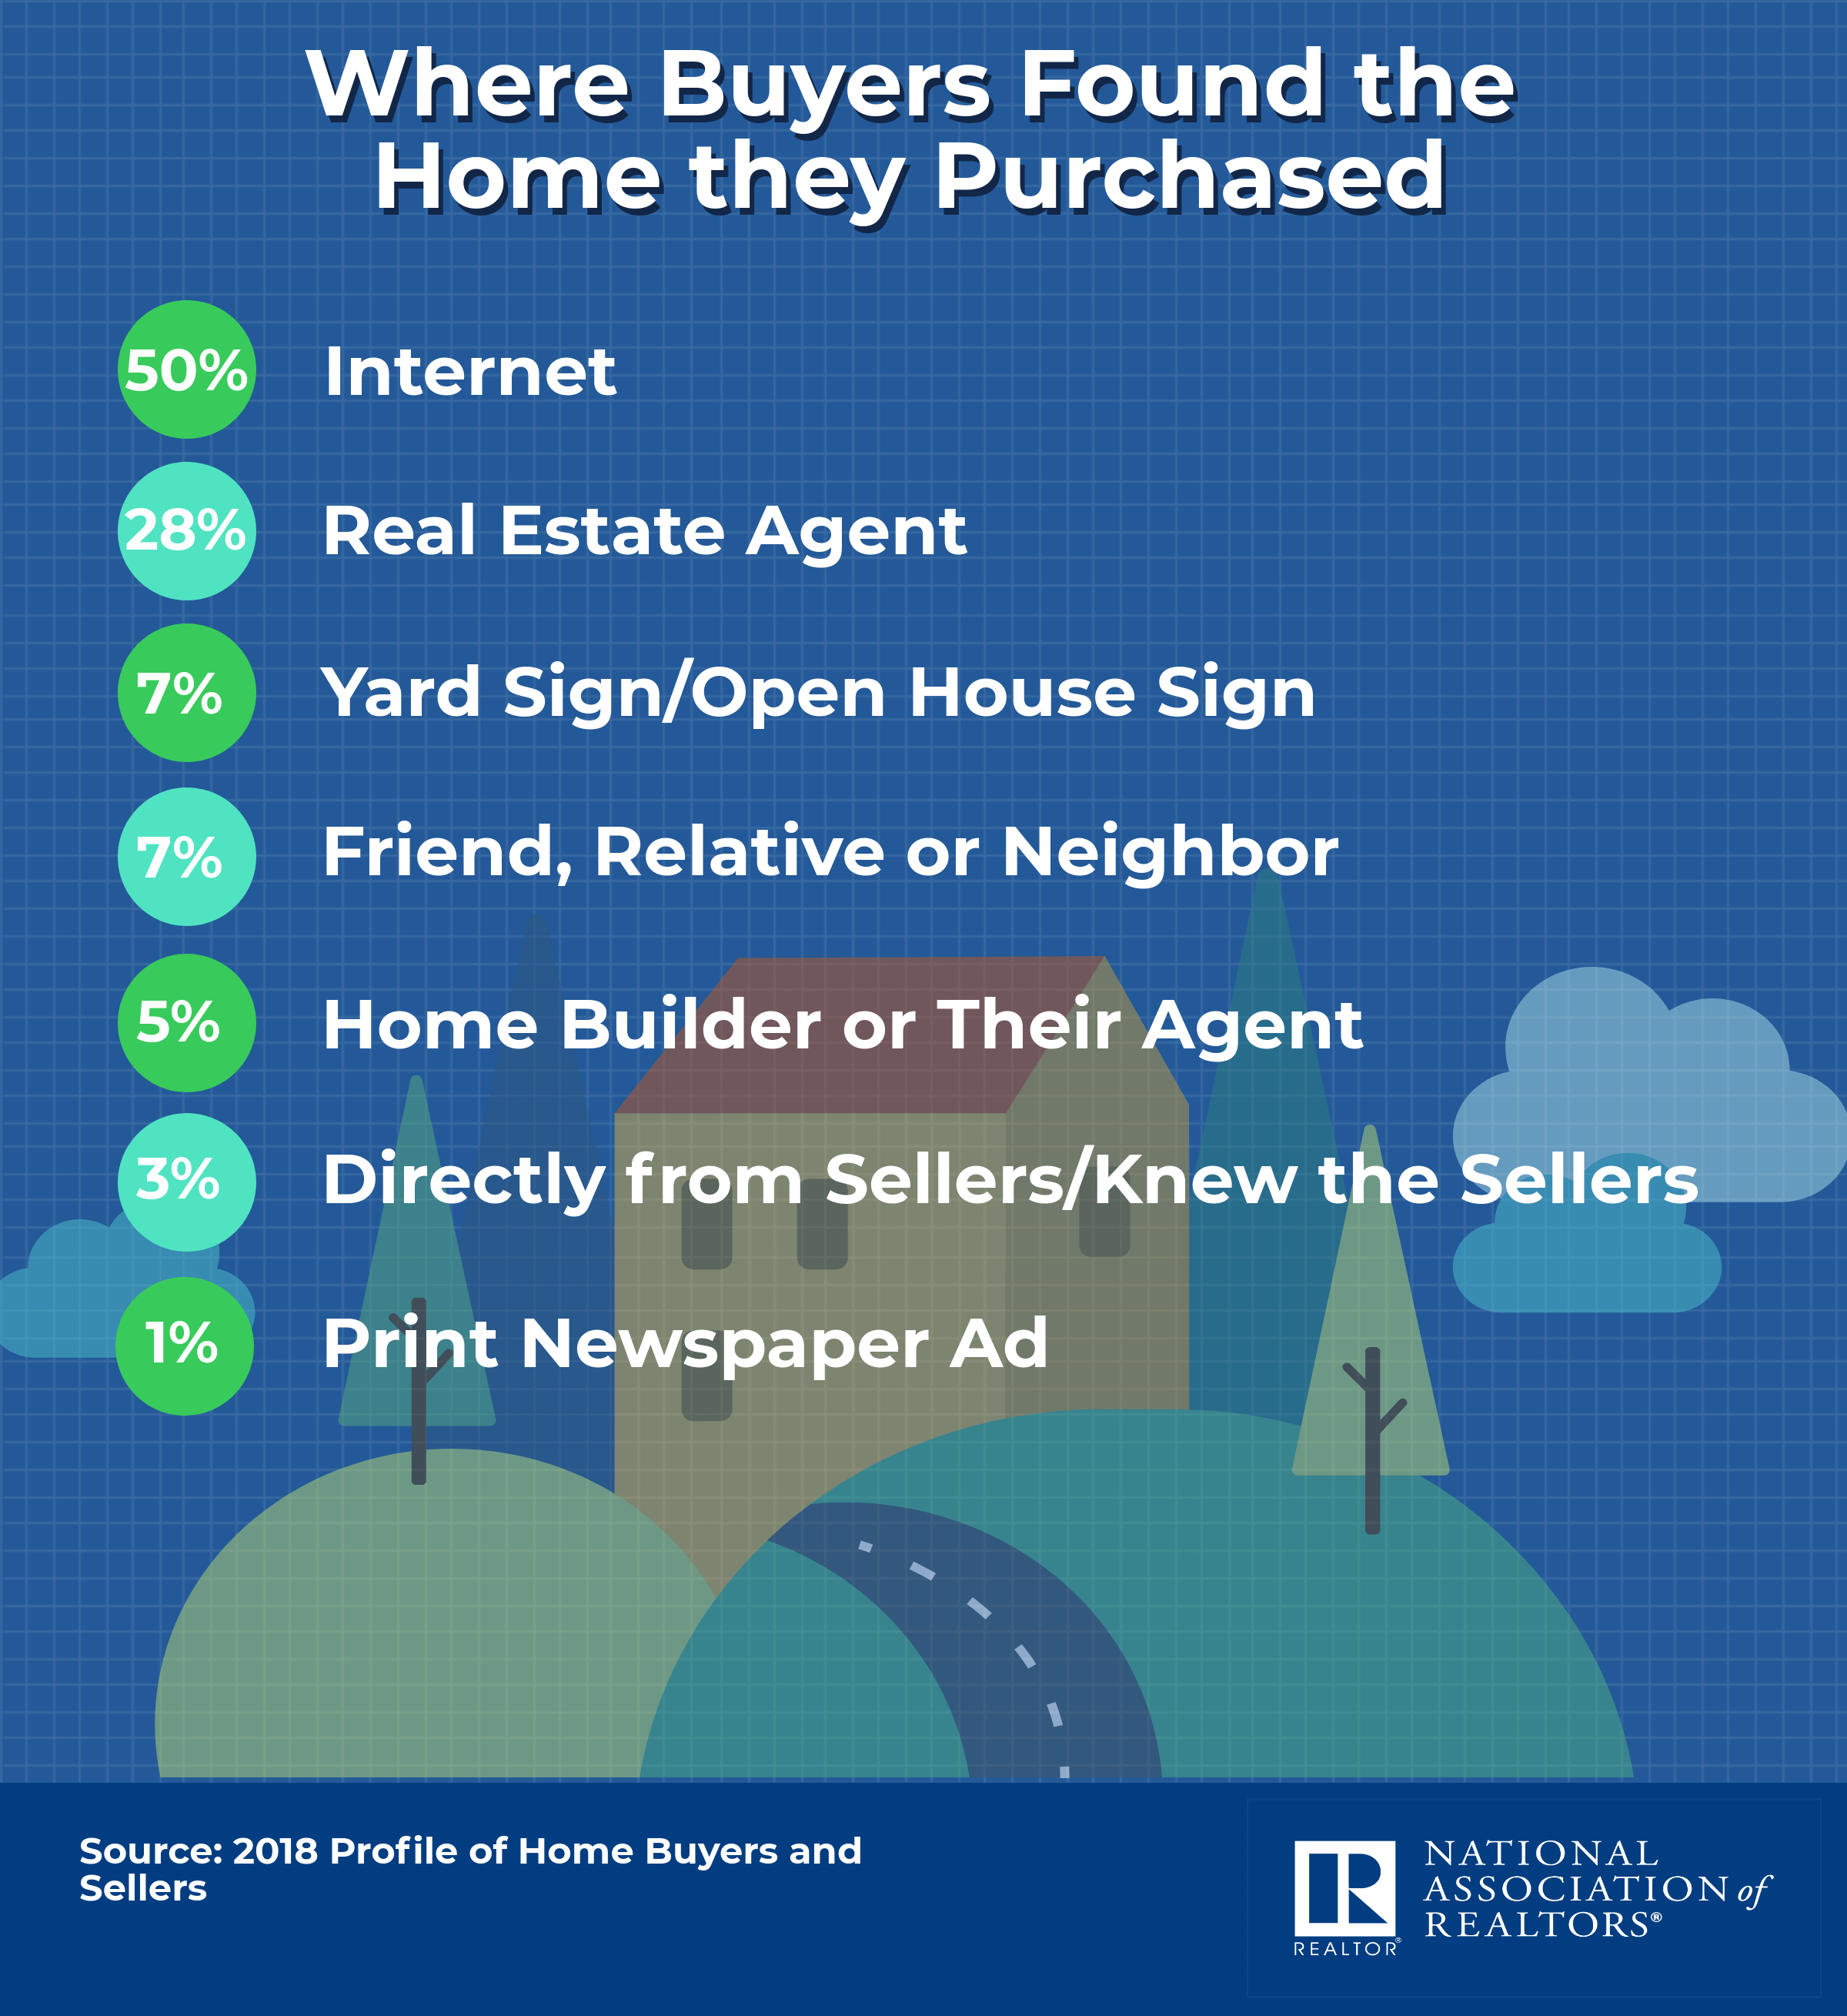 where-buyers-found-the-homes-they-purchased-04-23-2019-2400w-2619h (1)